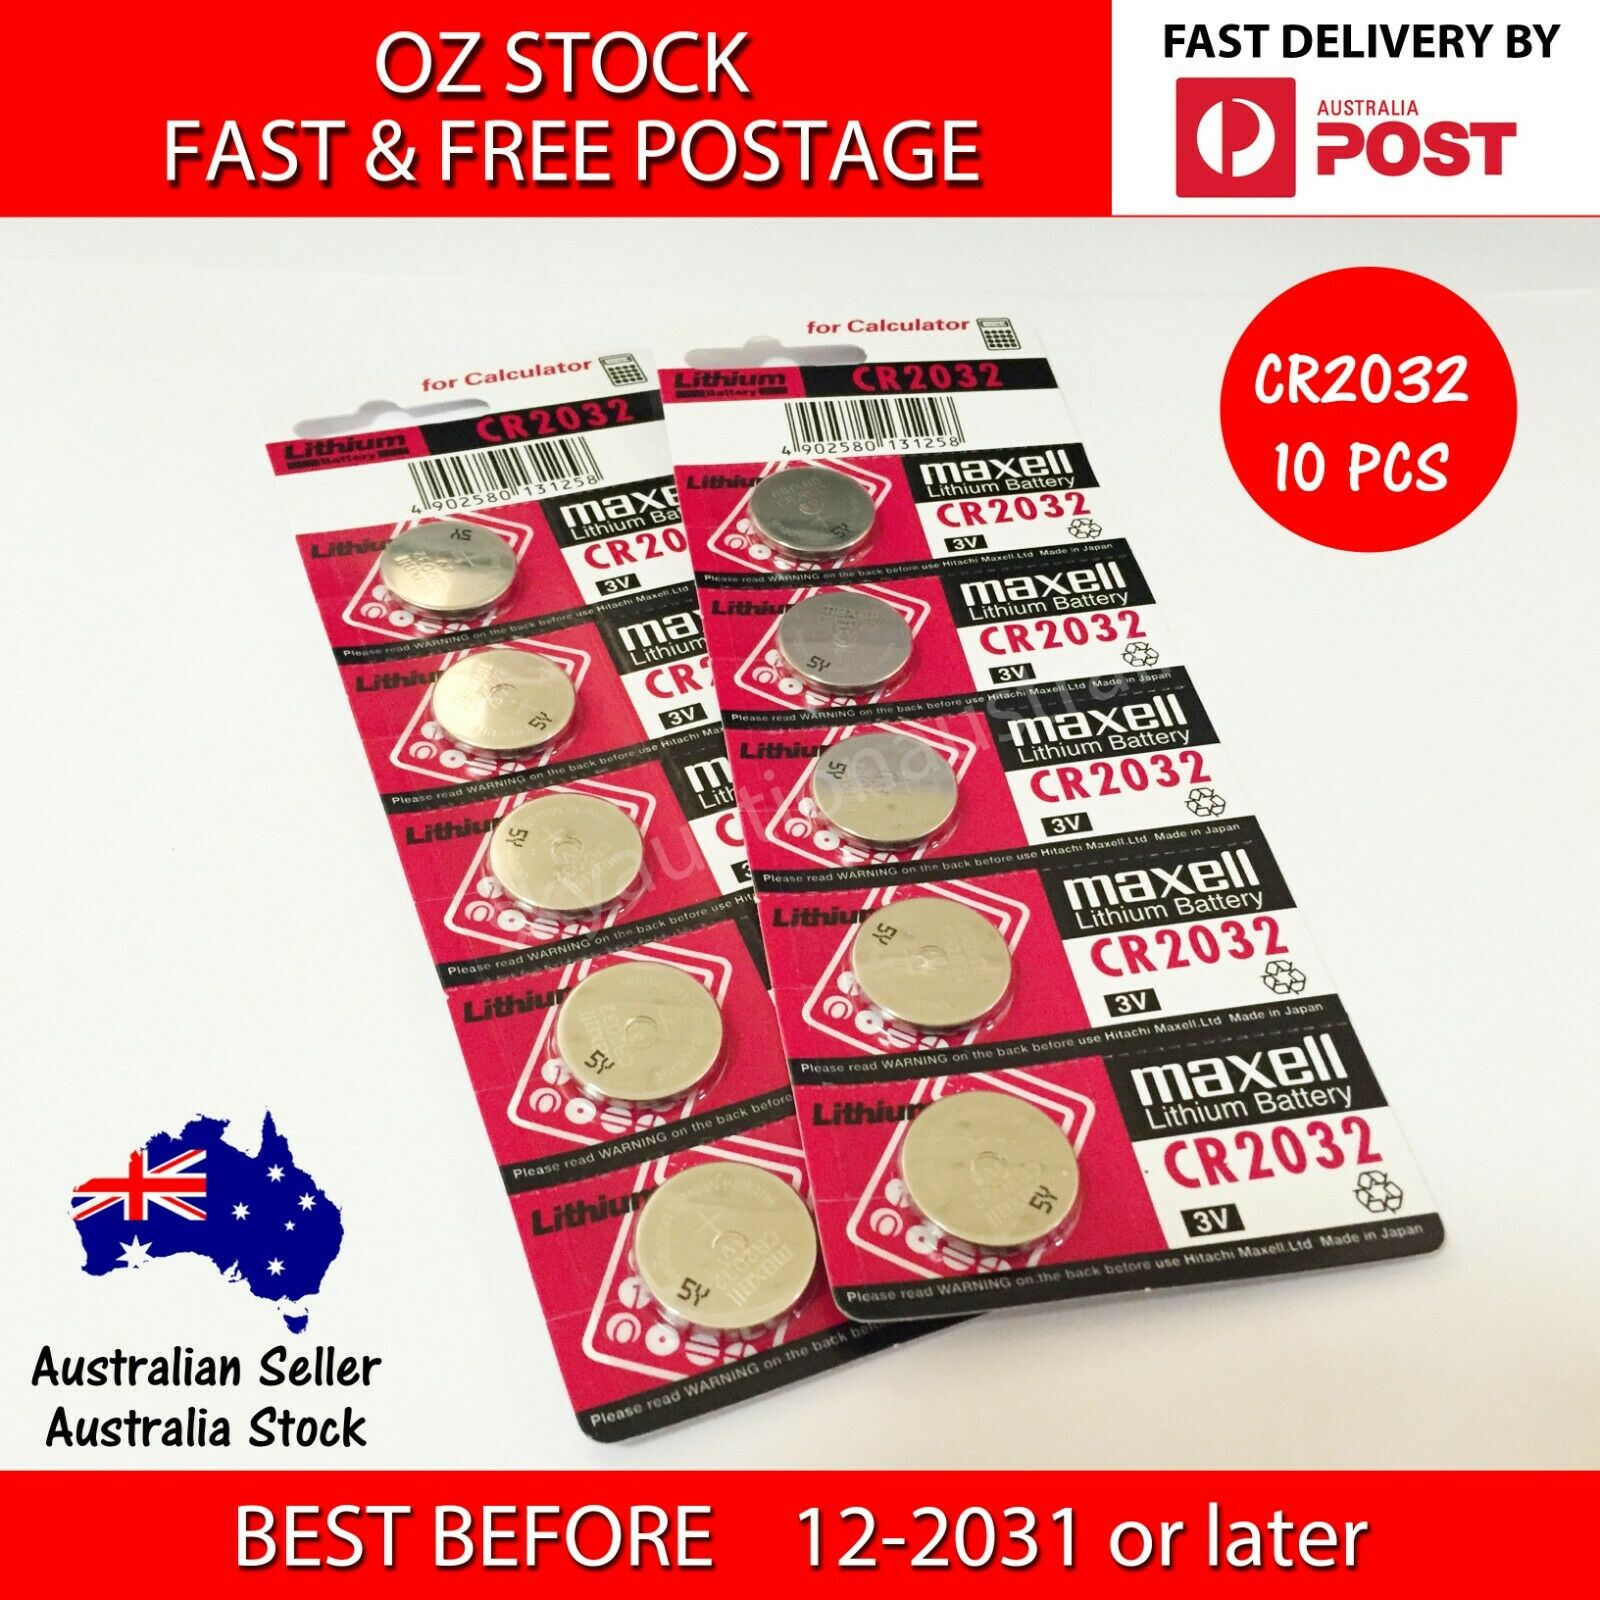 10 x CR2032 3v 225mah lithium Battery button cell/coin for calculator MELB STOCK